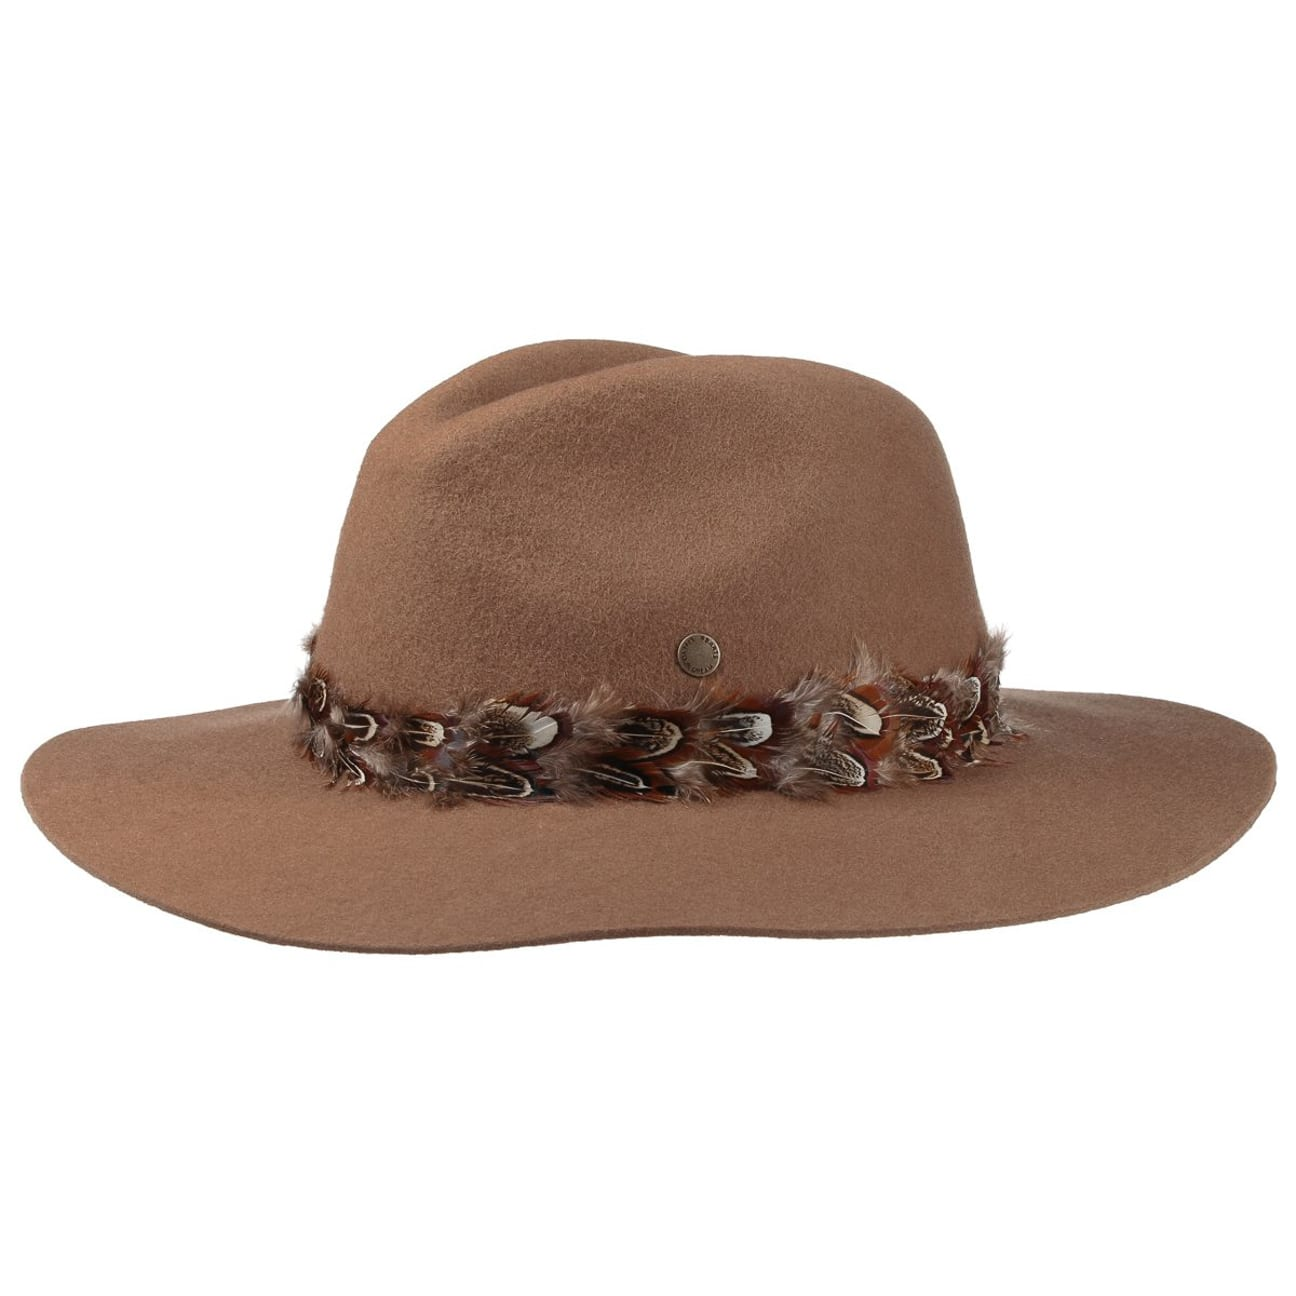 3326658d ... Alexia Women´s Hat by Barts - beige 4 ...